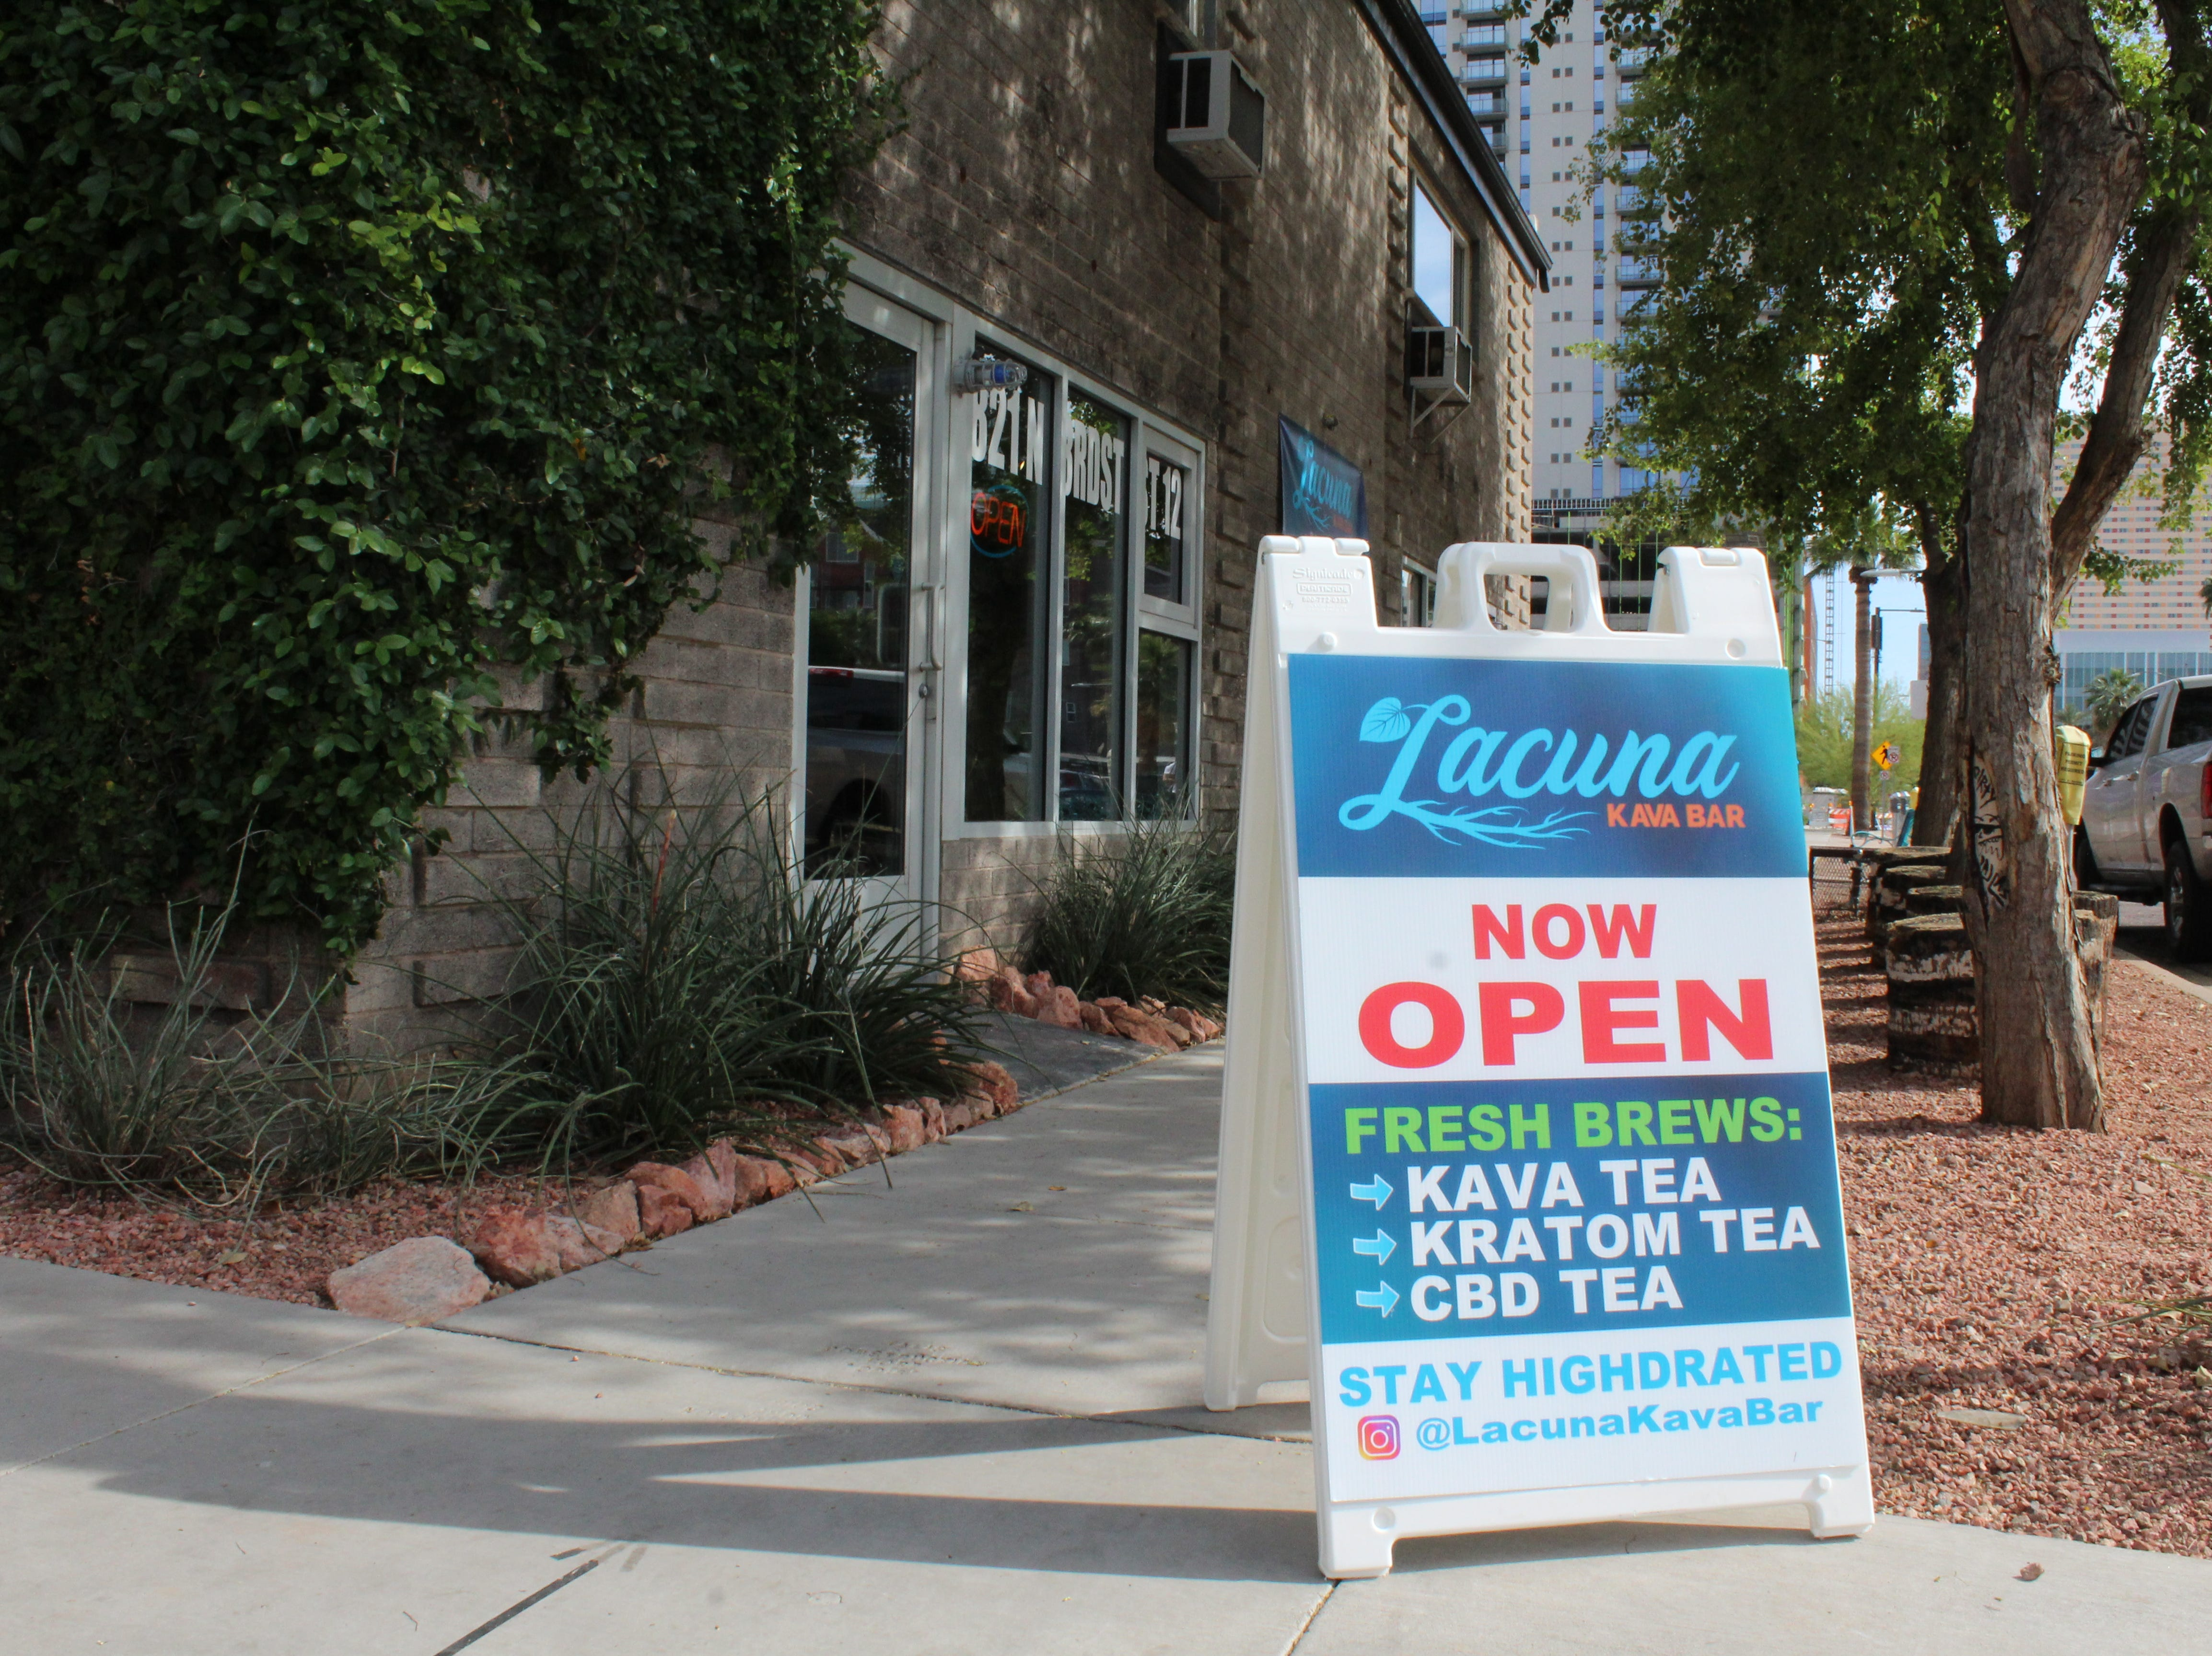 Lacuna Kava Bar in downtown Phoenix is located on 821 N. Third Street, Suite 12.